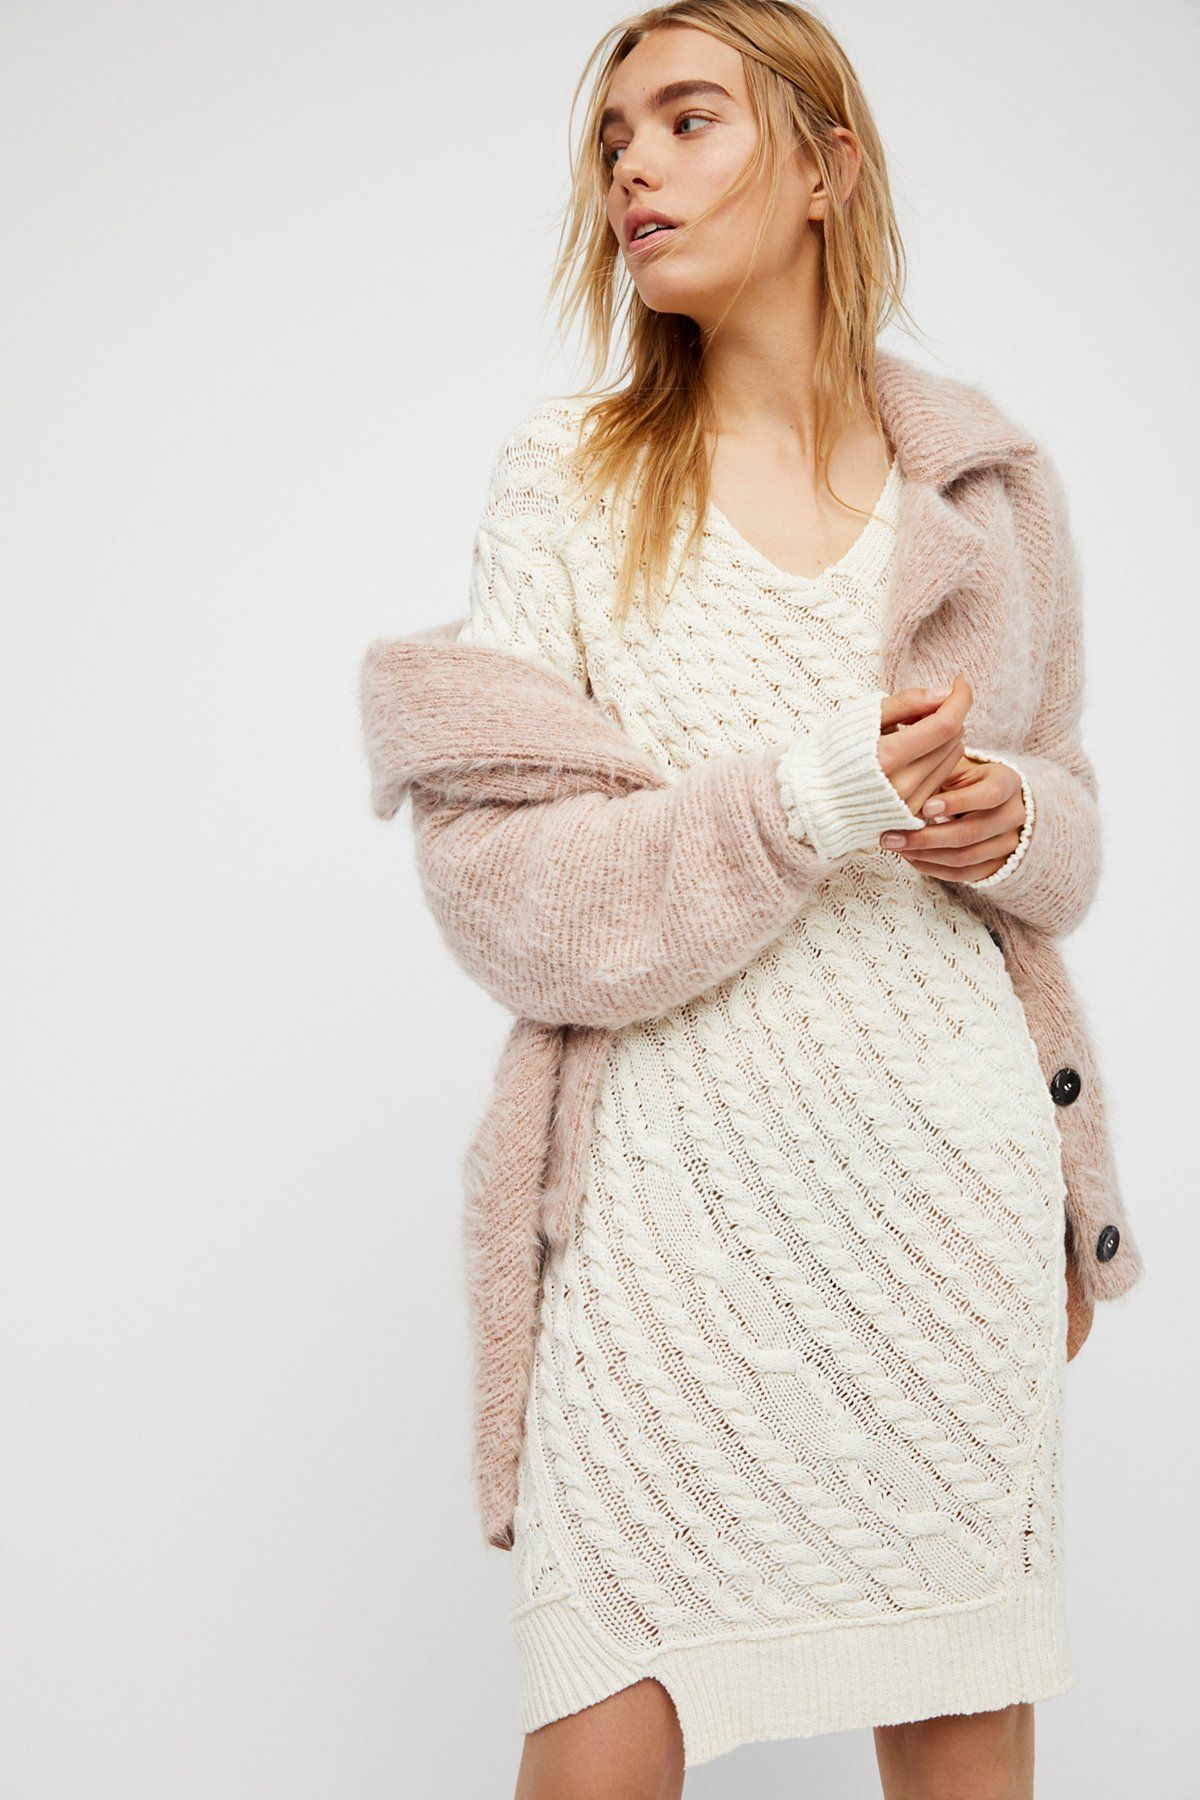 2019 year lifestyle- Sweater Cable dress pictures